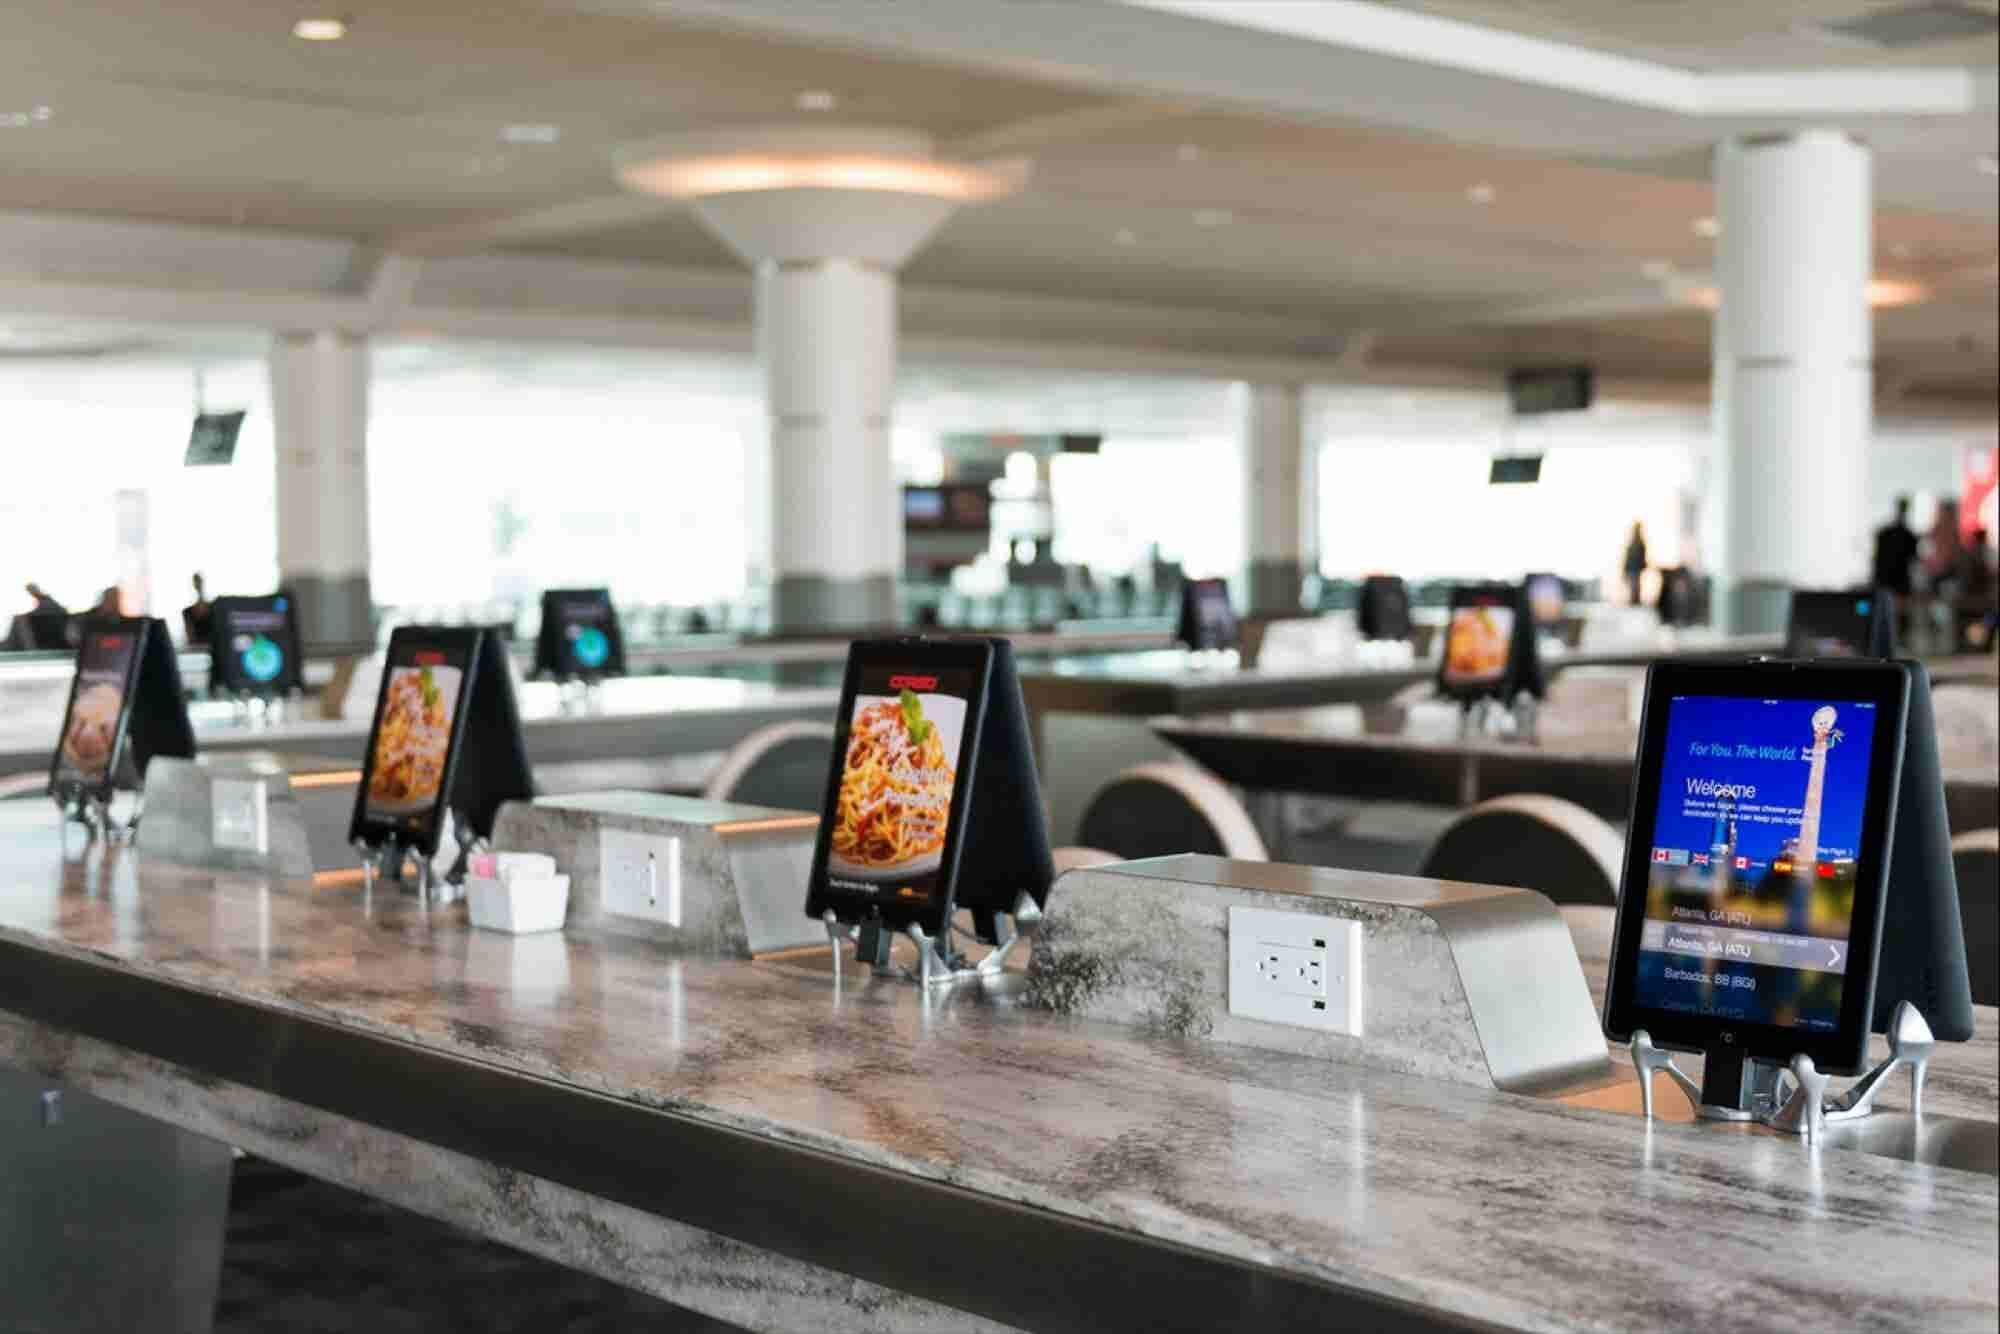 5 Ways Your Restaurant Experience Will Change in 2016